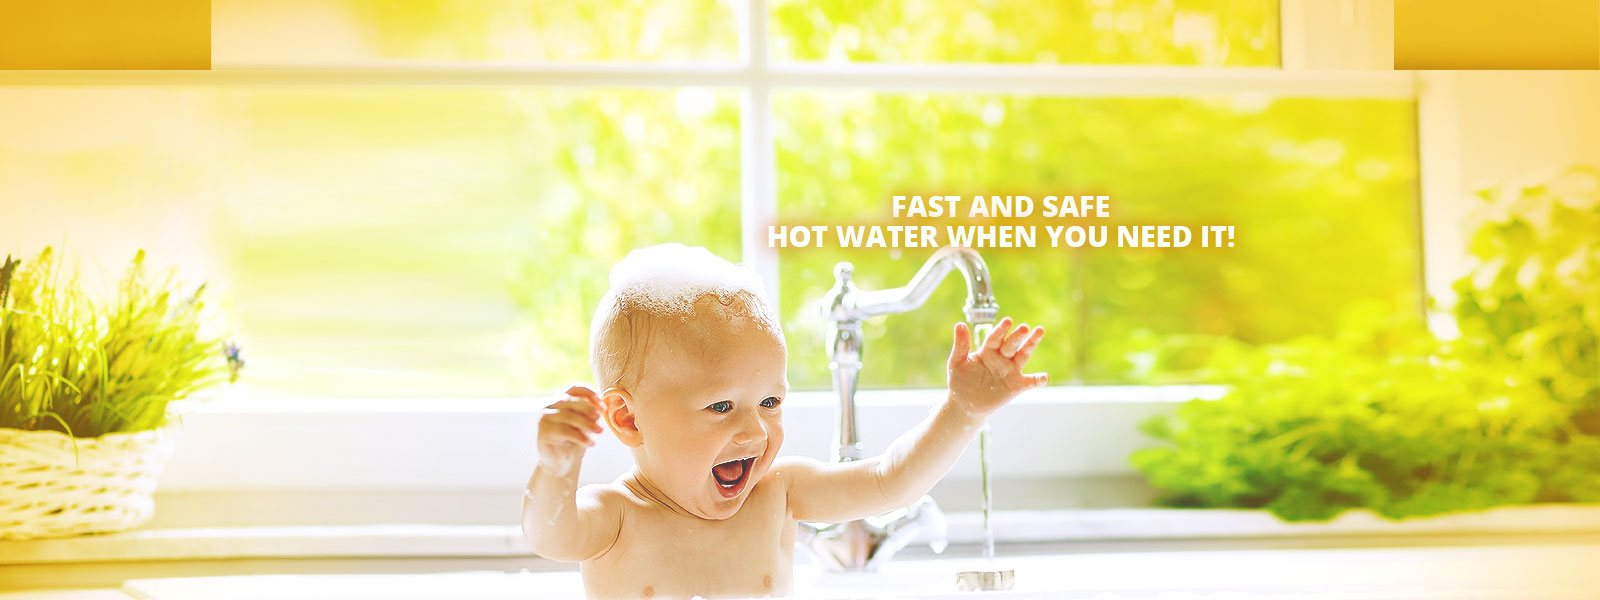 Fast and Safe, Hot Water When You Need It